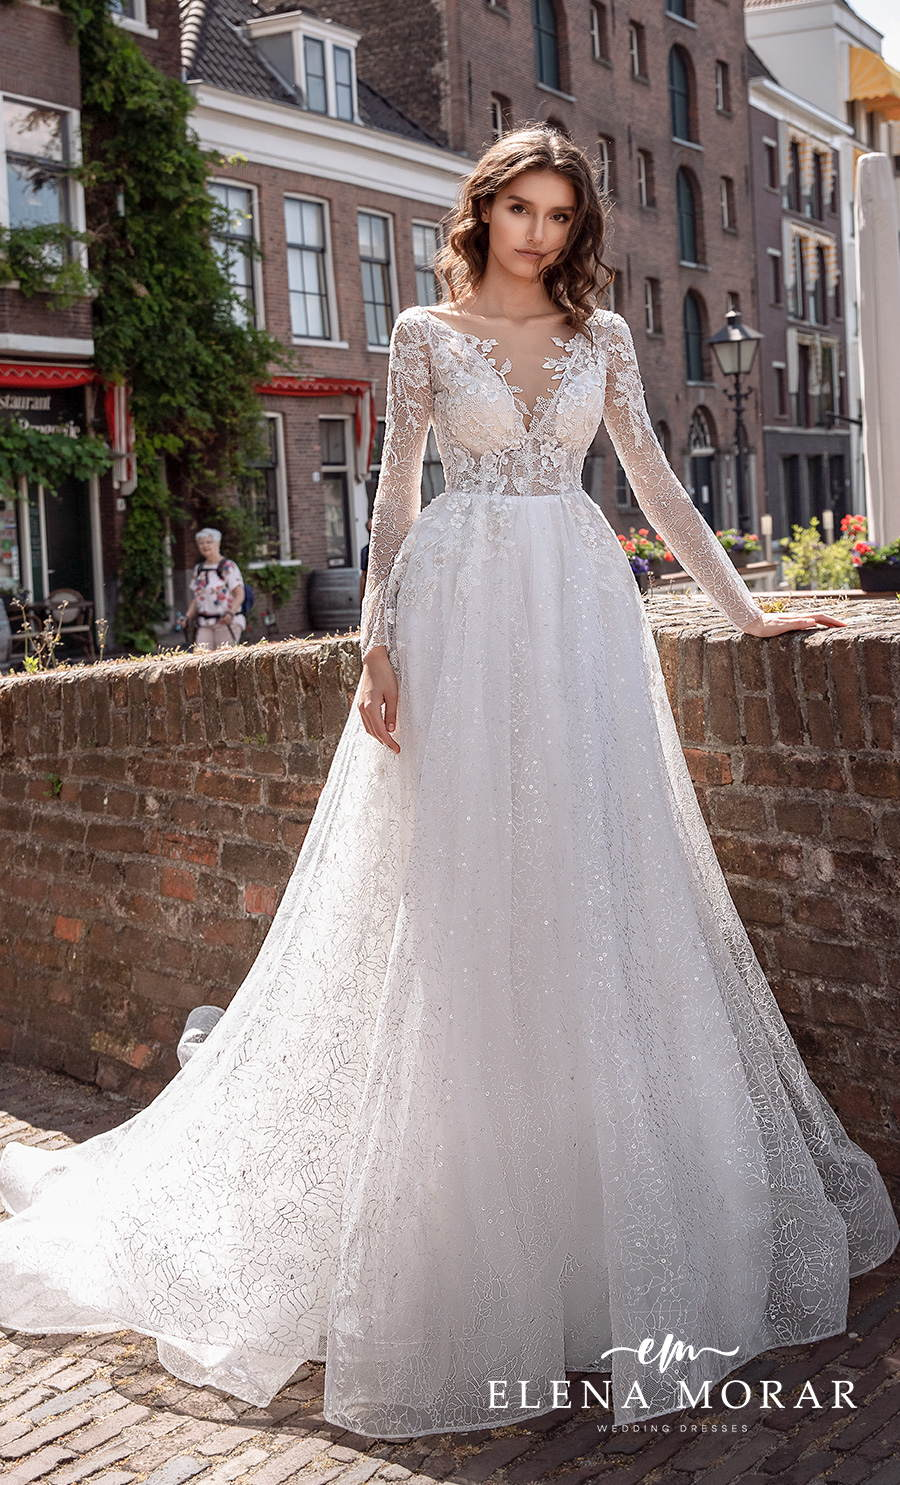 elena morar 2021 rotterdam bridal long sleeves v neck heavily embellished bodice romantic a line wedding dress v back chapel train (rm006) mv